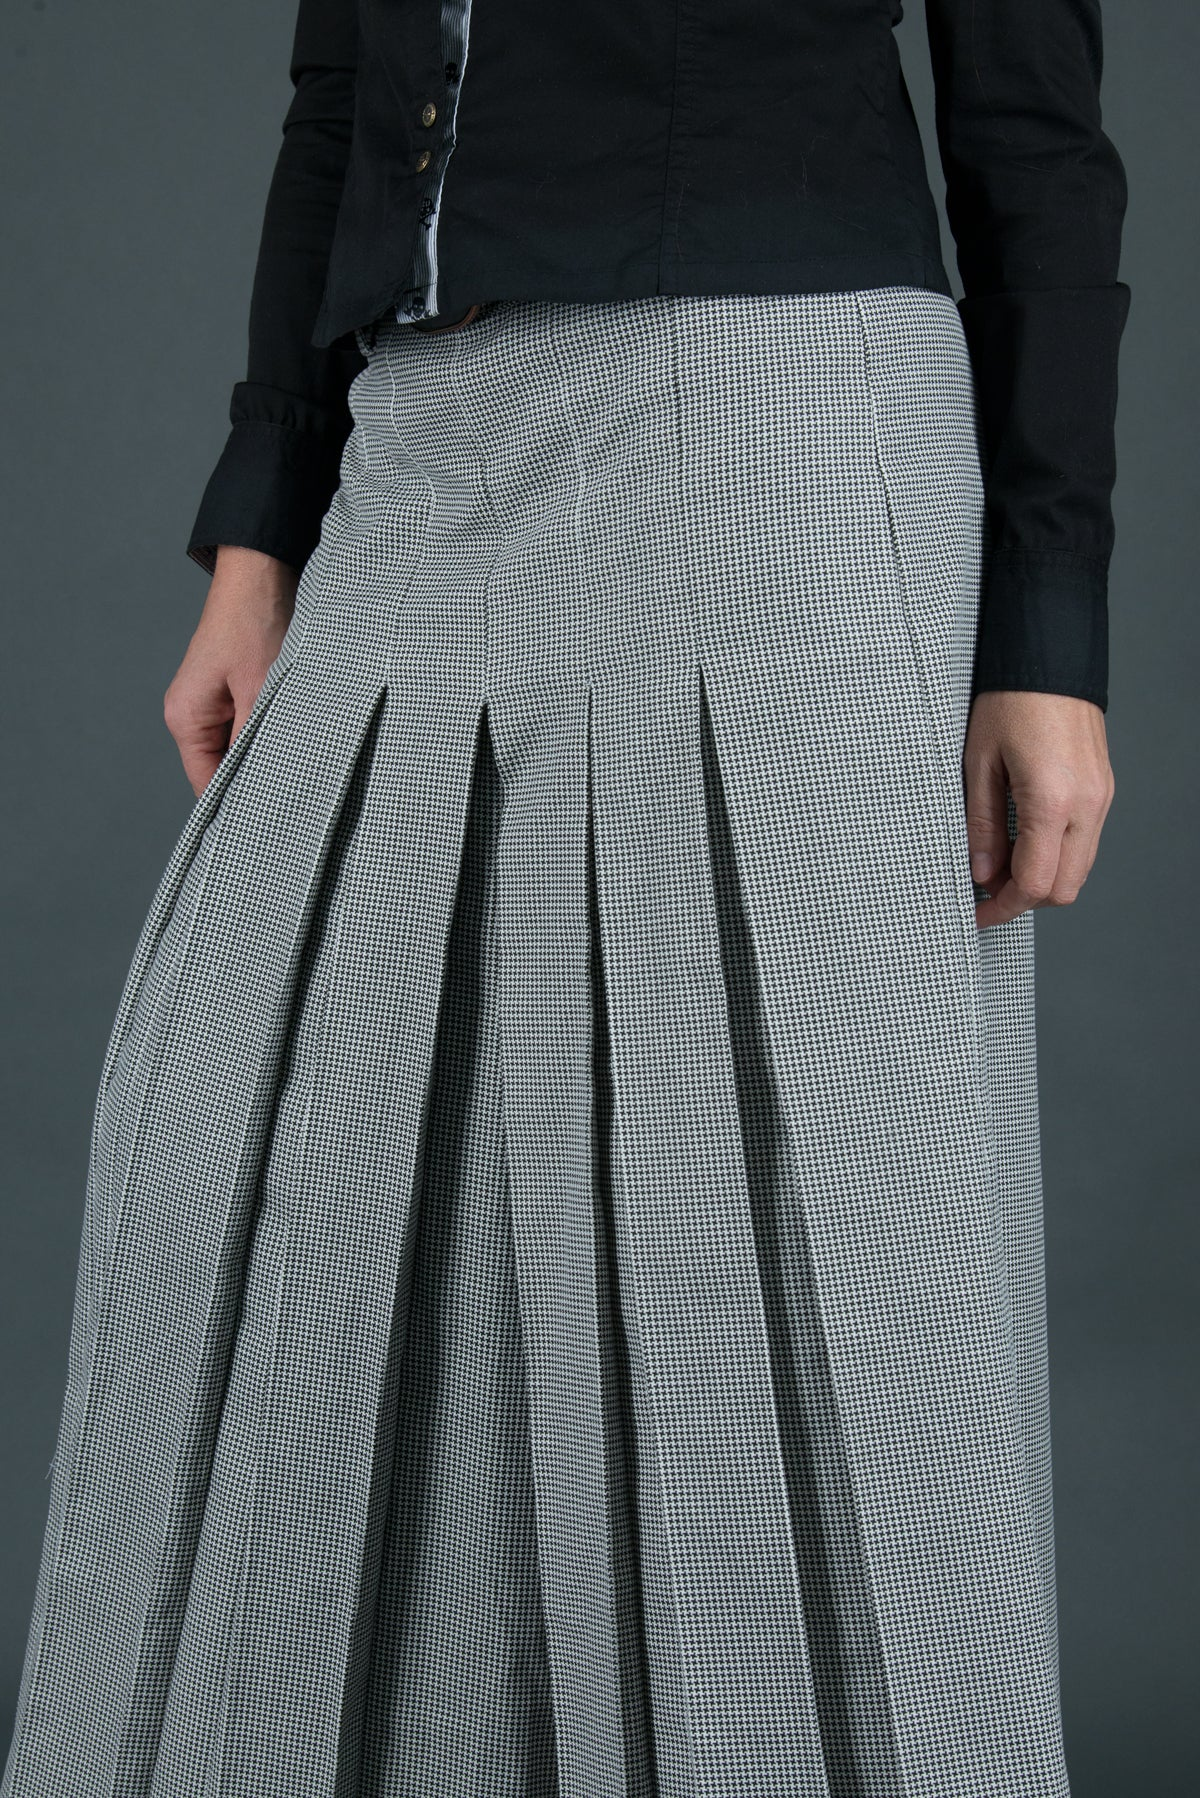 Shepherd's Plaid Wide Cotton Skirt Pants, Pants & Leggings